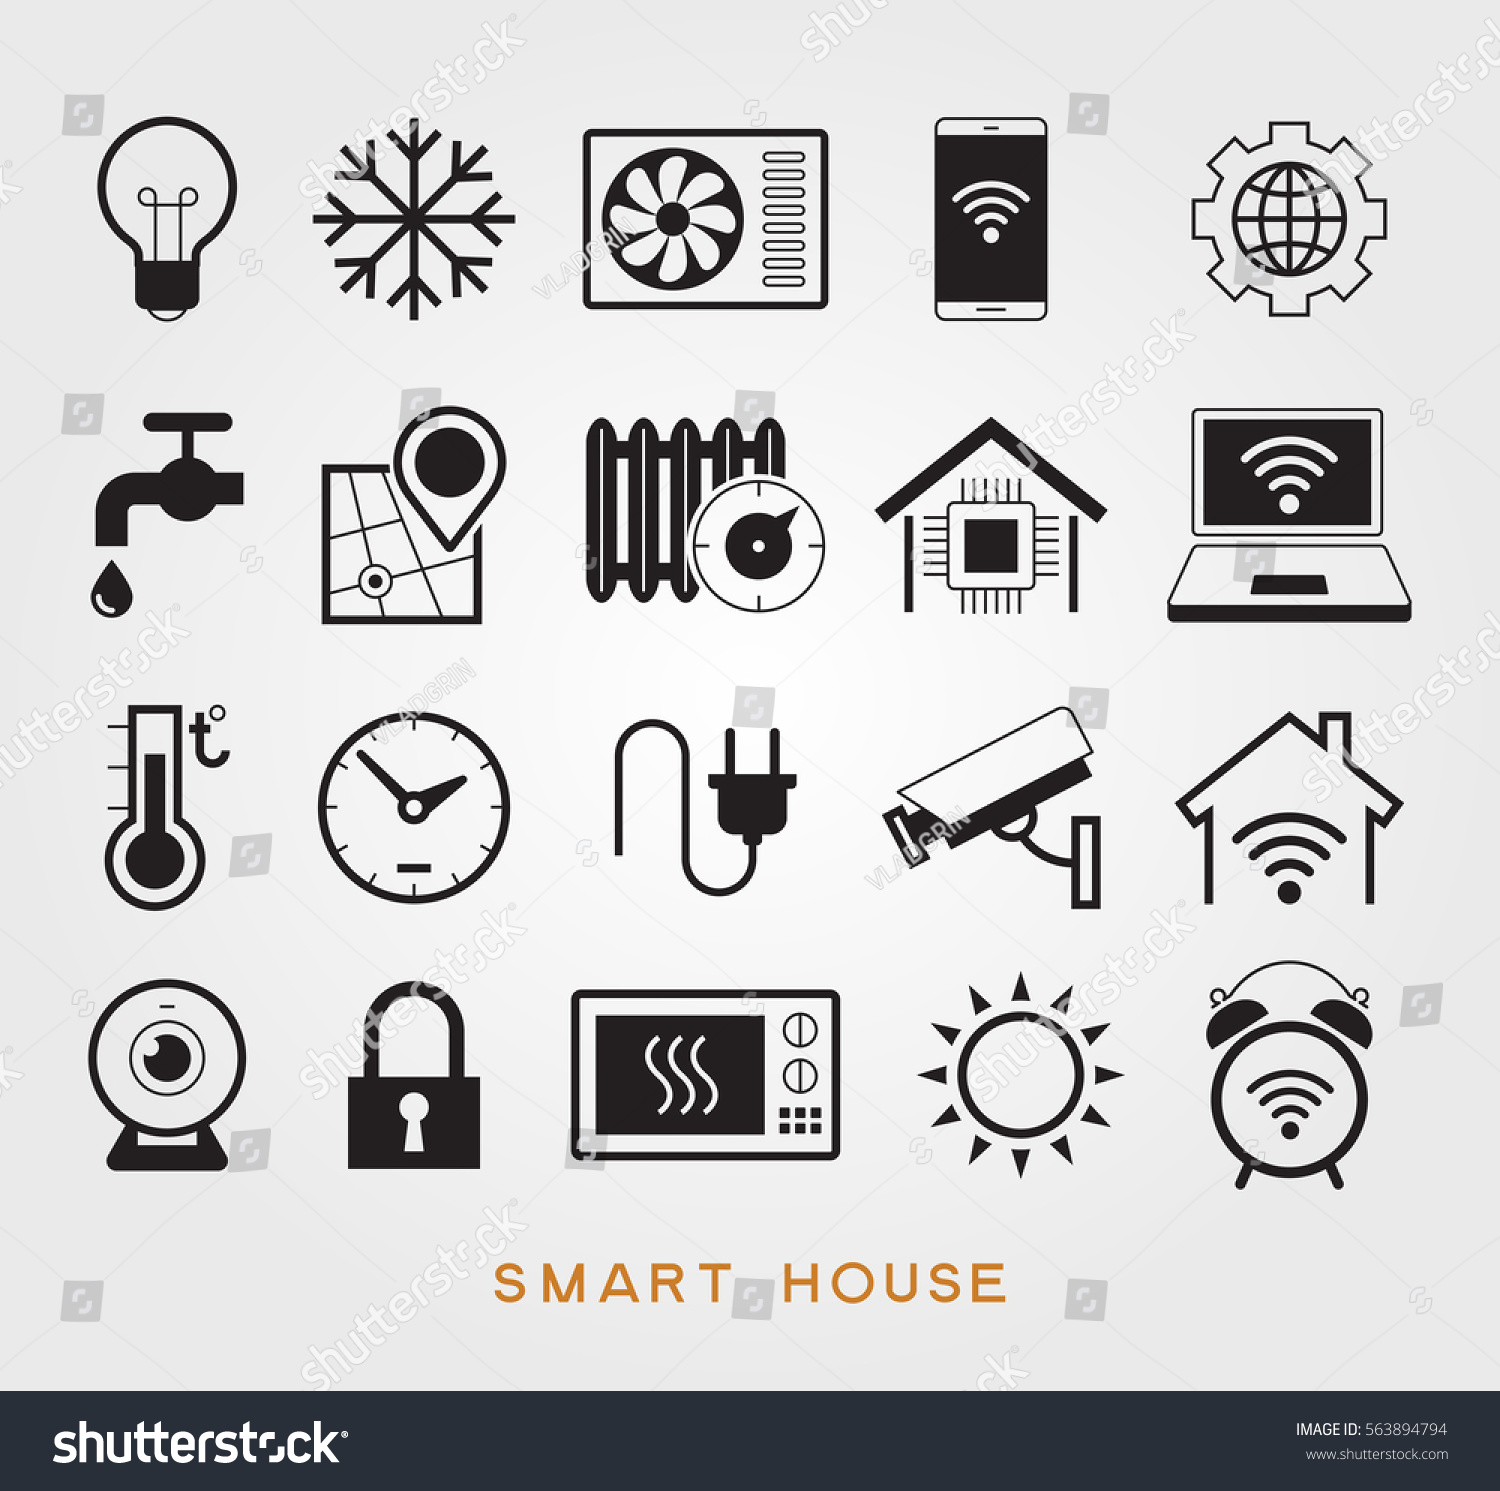 Set smart house symbols vector icons stock vector 563894794 set smart house symbols vector icons for home automation to control a smart home buycottarizona Image collections